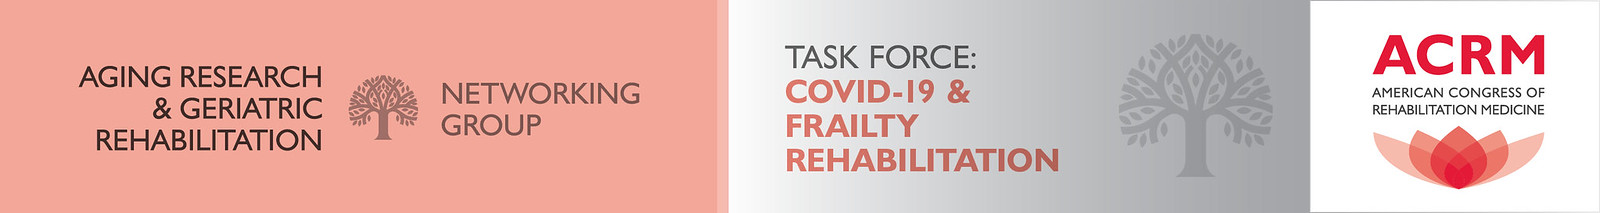 Aging Research & Geriatric Rehabilitation Networking Group COVID-19 Task Force header